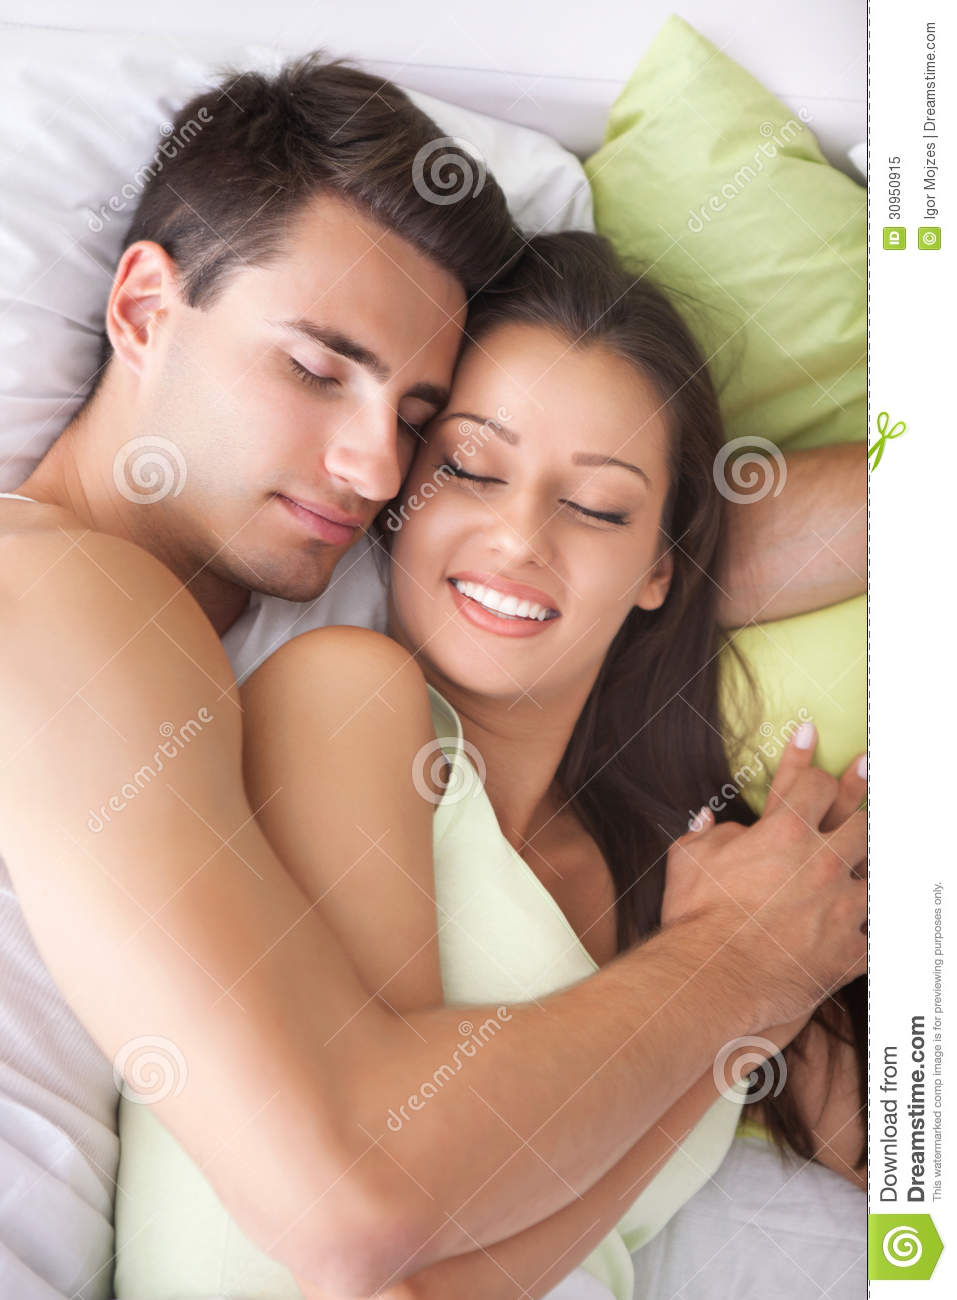 Couple Sleeping And Hugging On The Bed Royalty Free Stock Photo